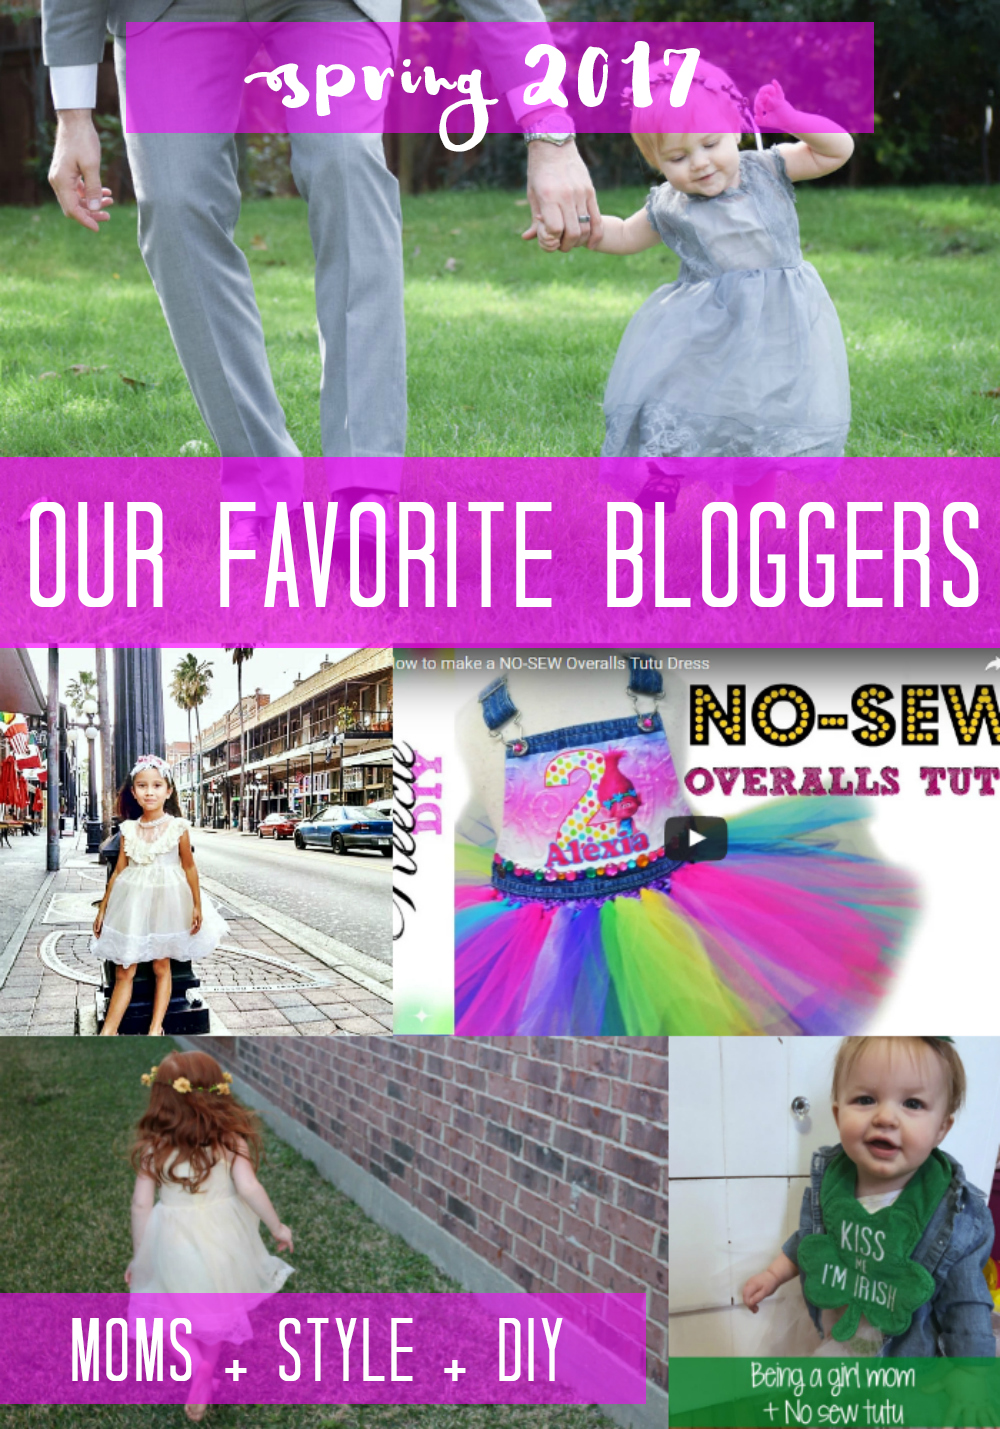 Top Mom, Style, and DIY Bloggers